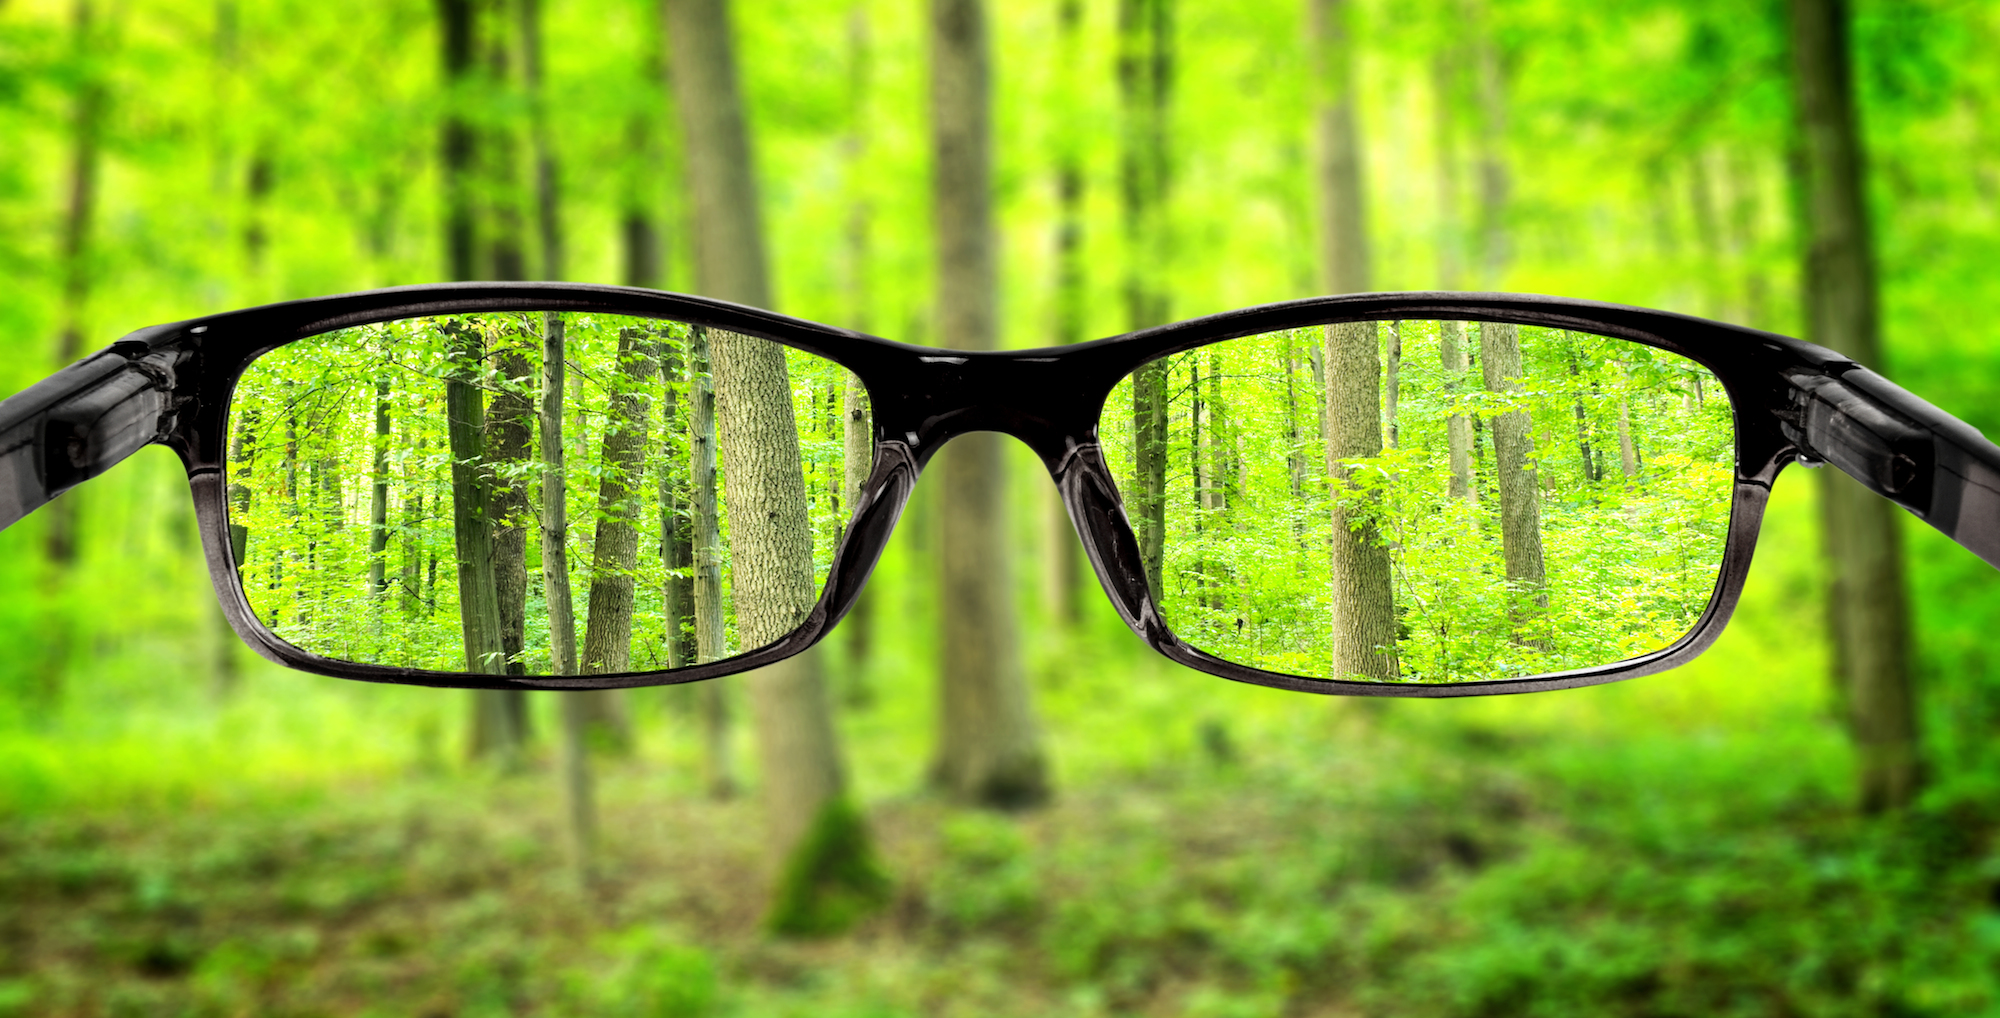 Understanding Vision in a